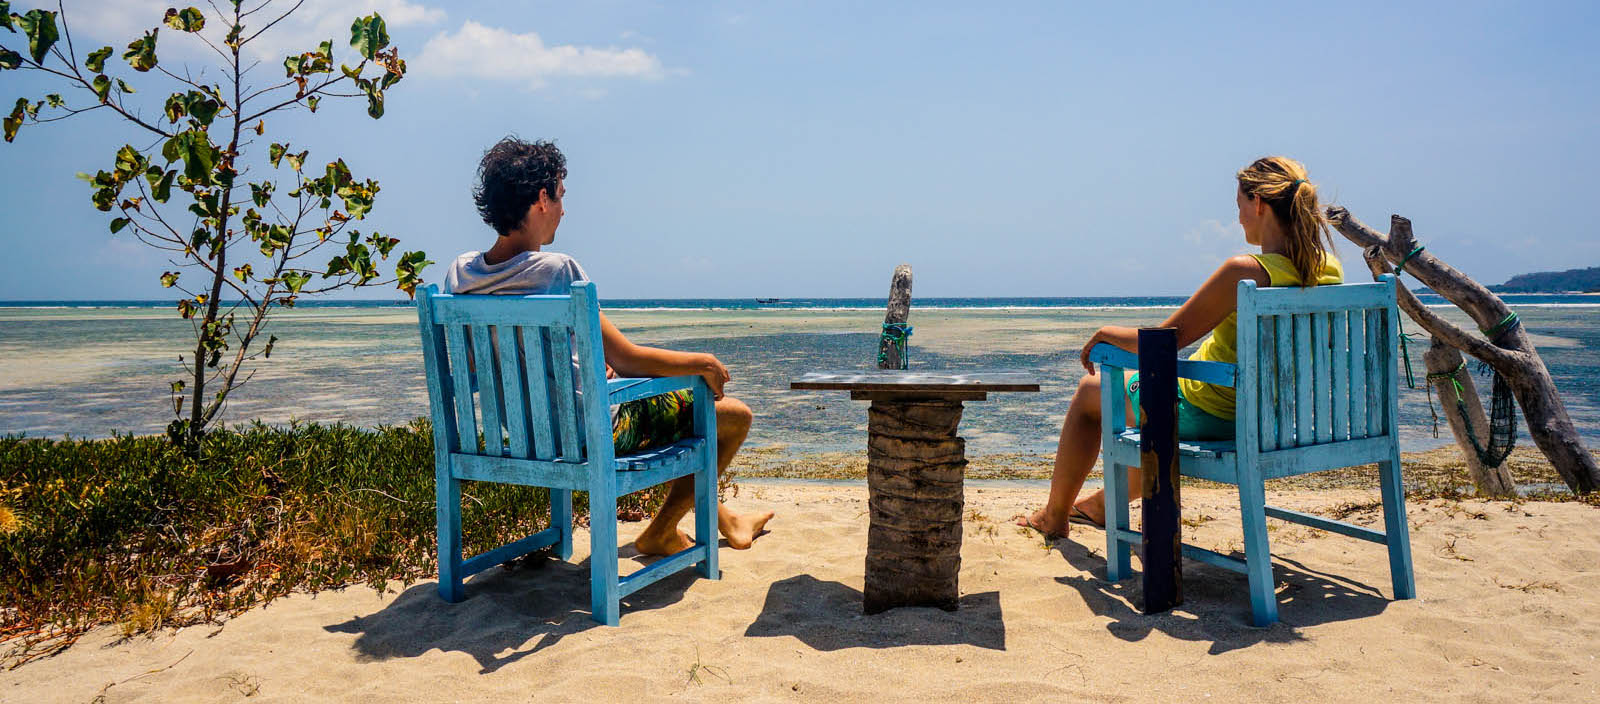 Sandra and Peter sitting on a beach in Gili Air